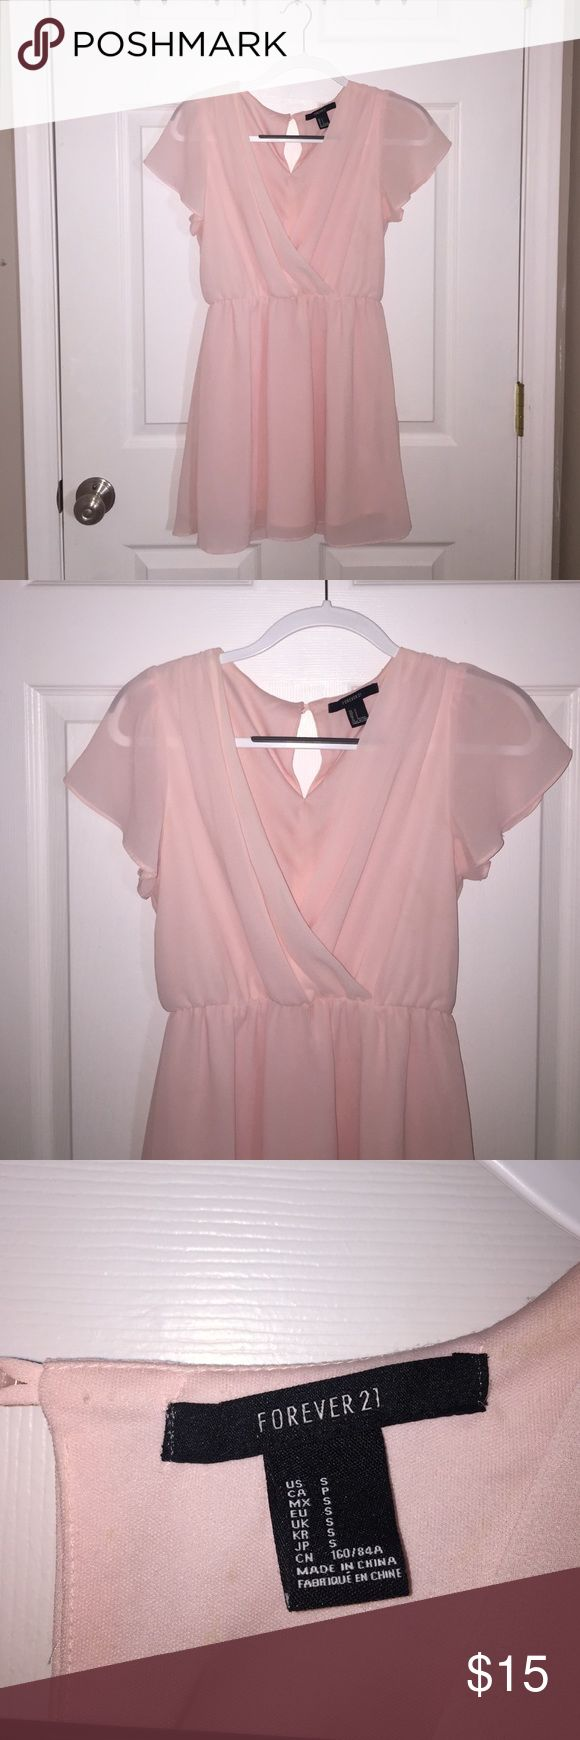 Forever 21 S Light Pink Dress Forever 21 S Light Pink Dress, used, excellent condition Forever 21 Dresses